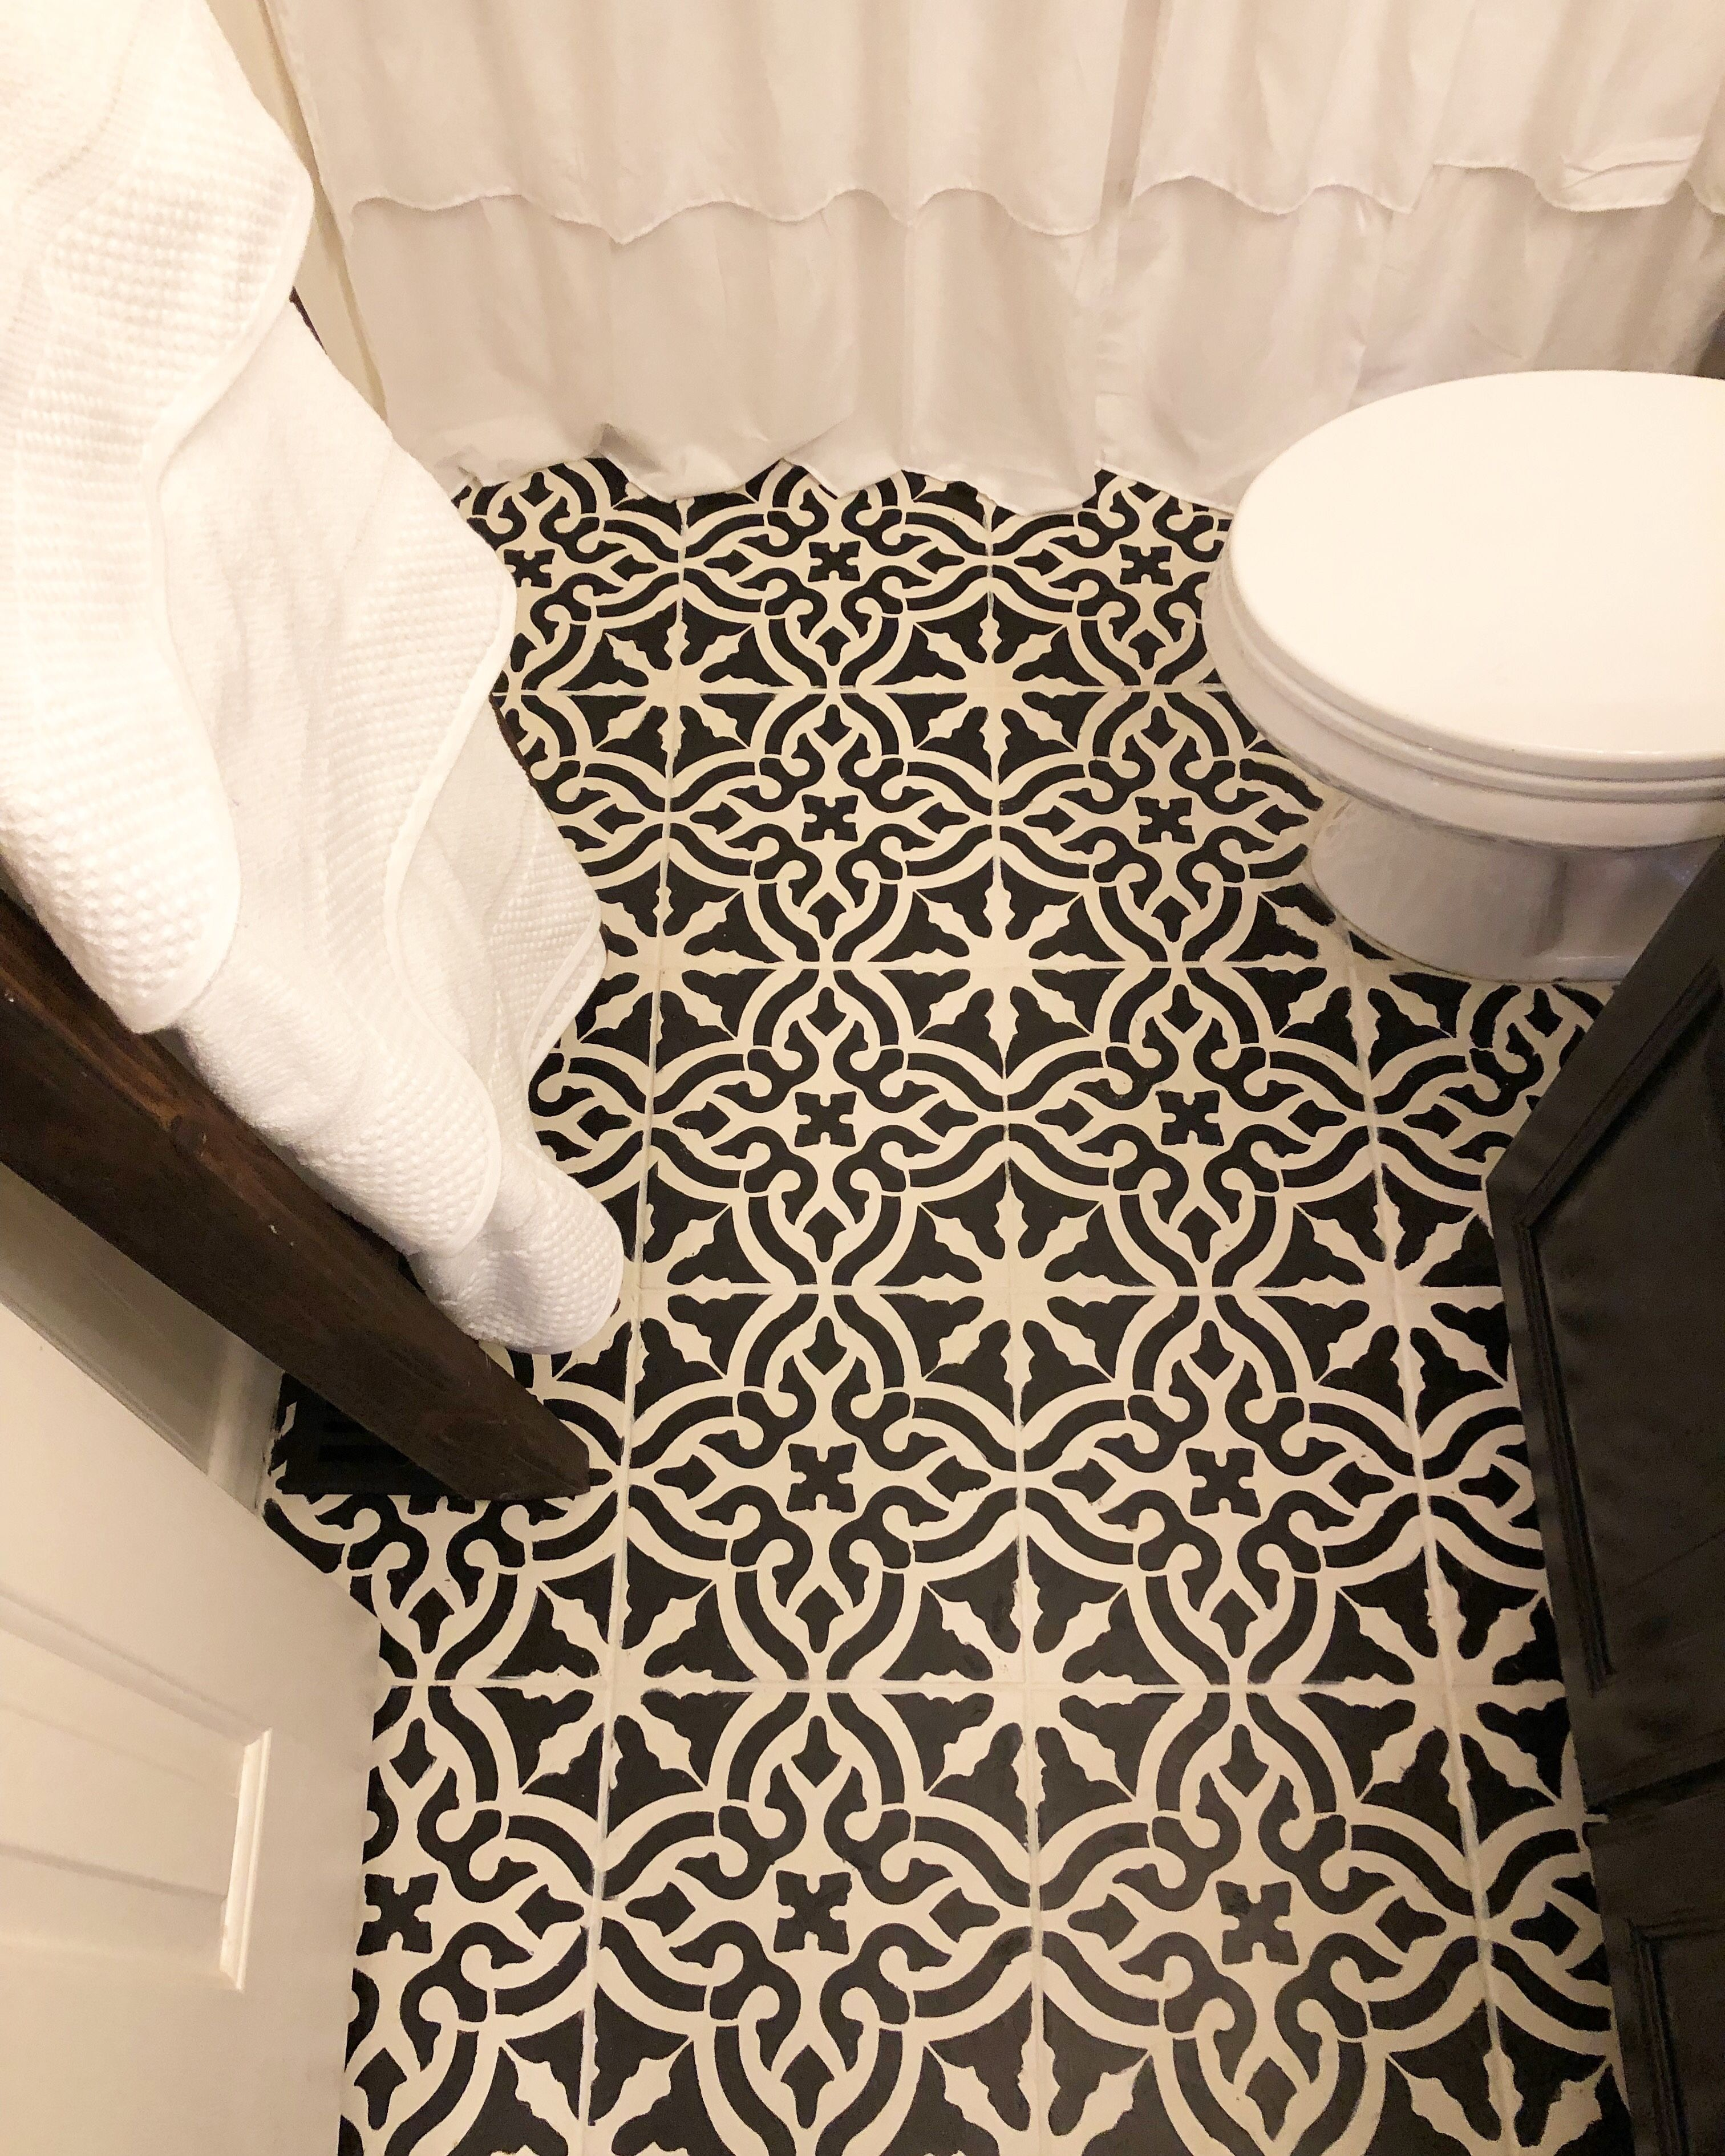 Stenciled ceramic tile floors for the win week 4 of the 100 room stenciled ceramic tile floors for the win week 4 of the 100 room challenge was a big one wilshire collections dailygadgetfo Images